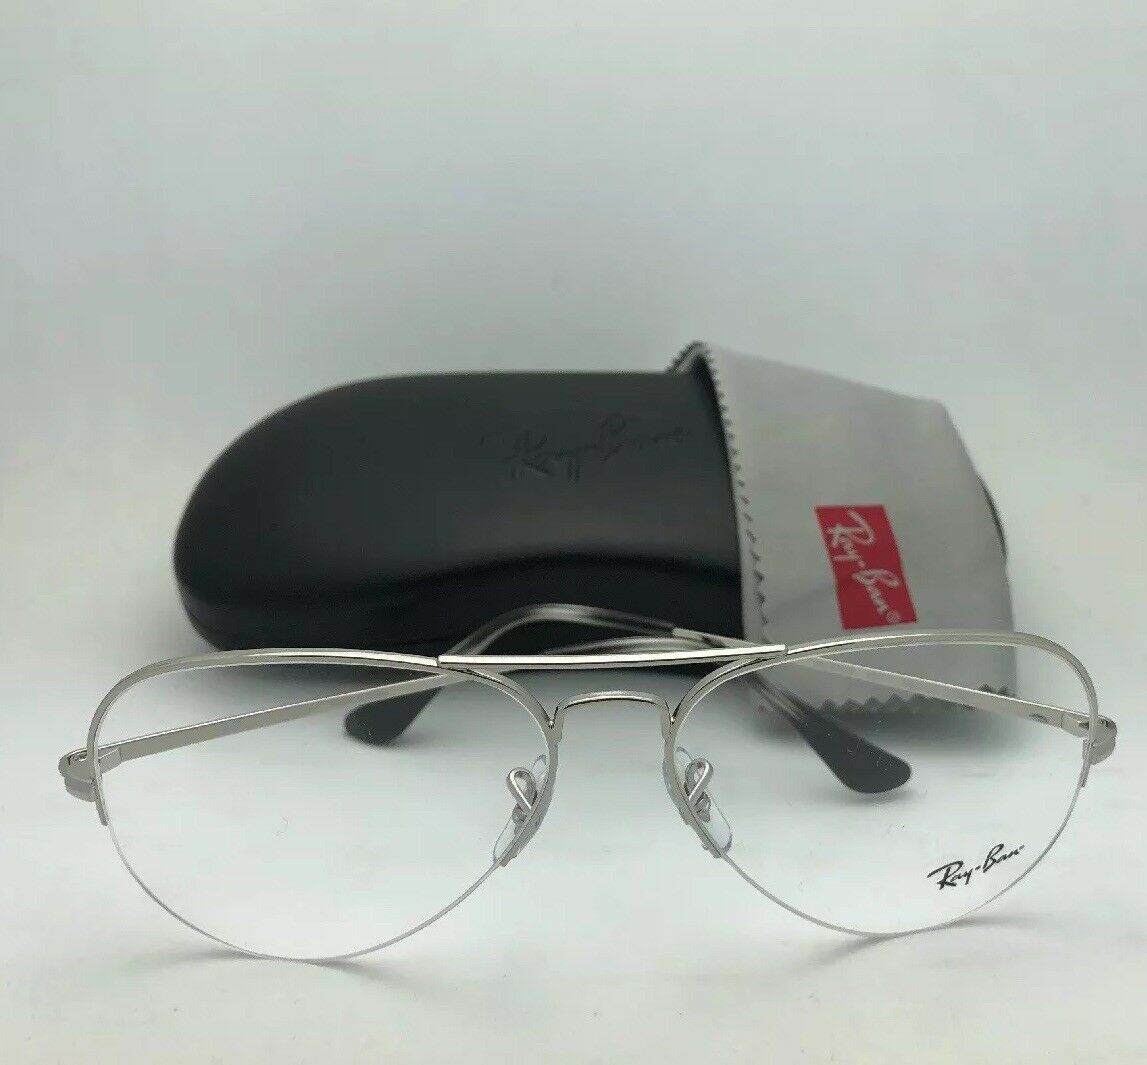 55bad2081bc New RAY-BAN Eyeglasses RB 6589 2501 56-15 140 Aviator Semi ...